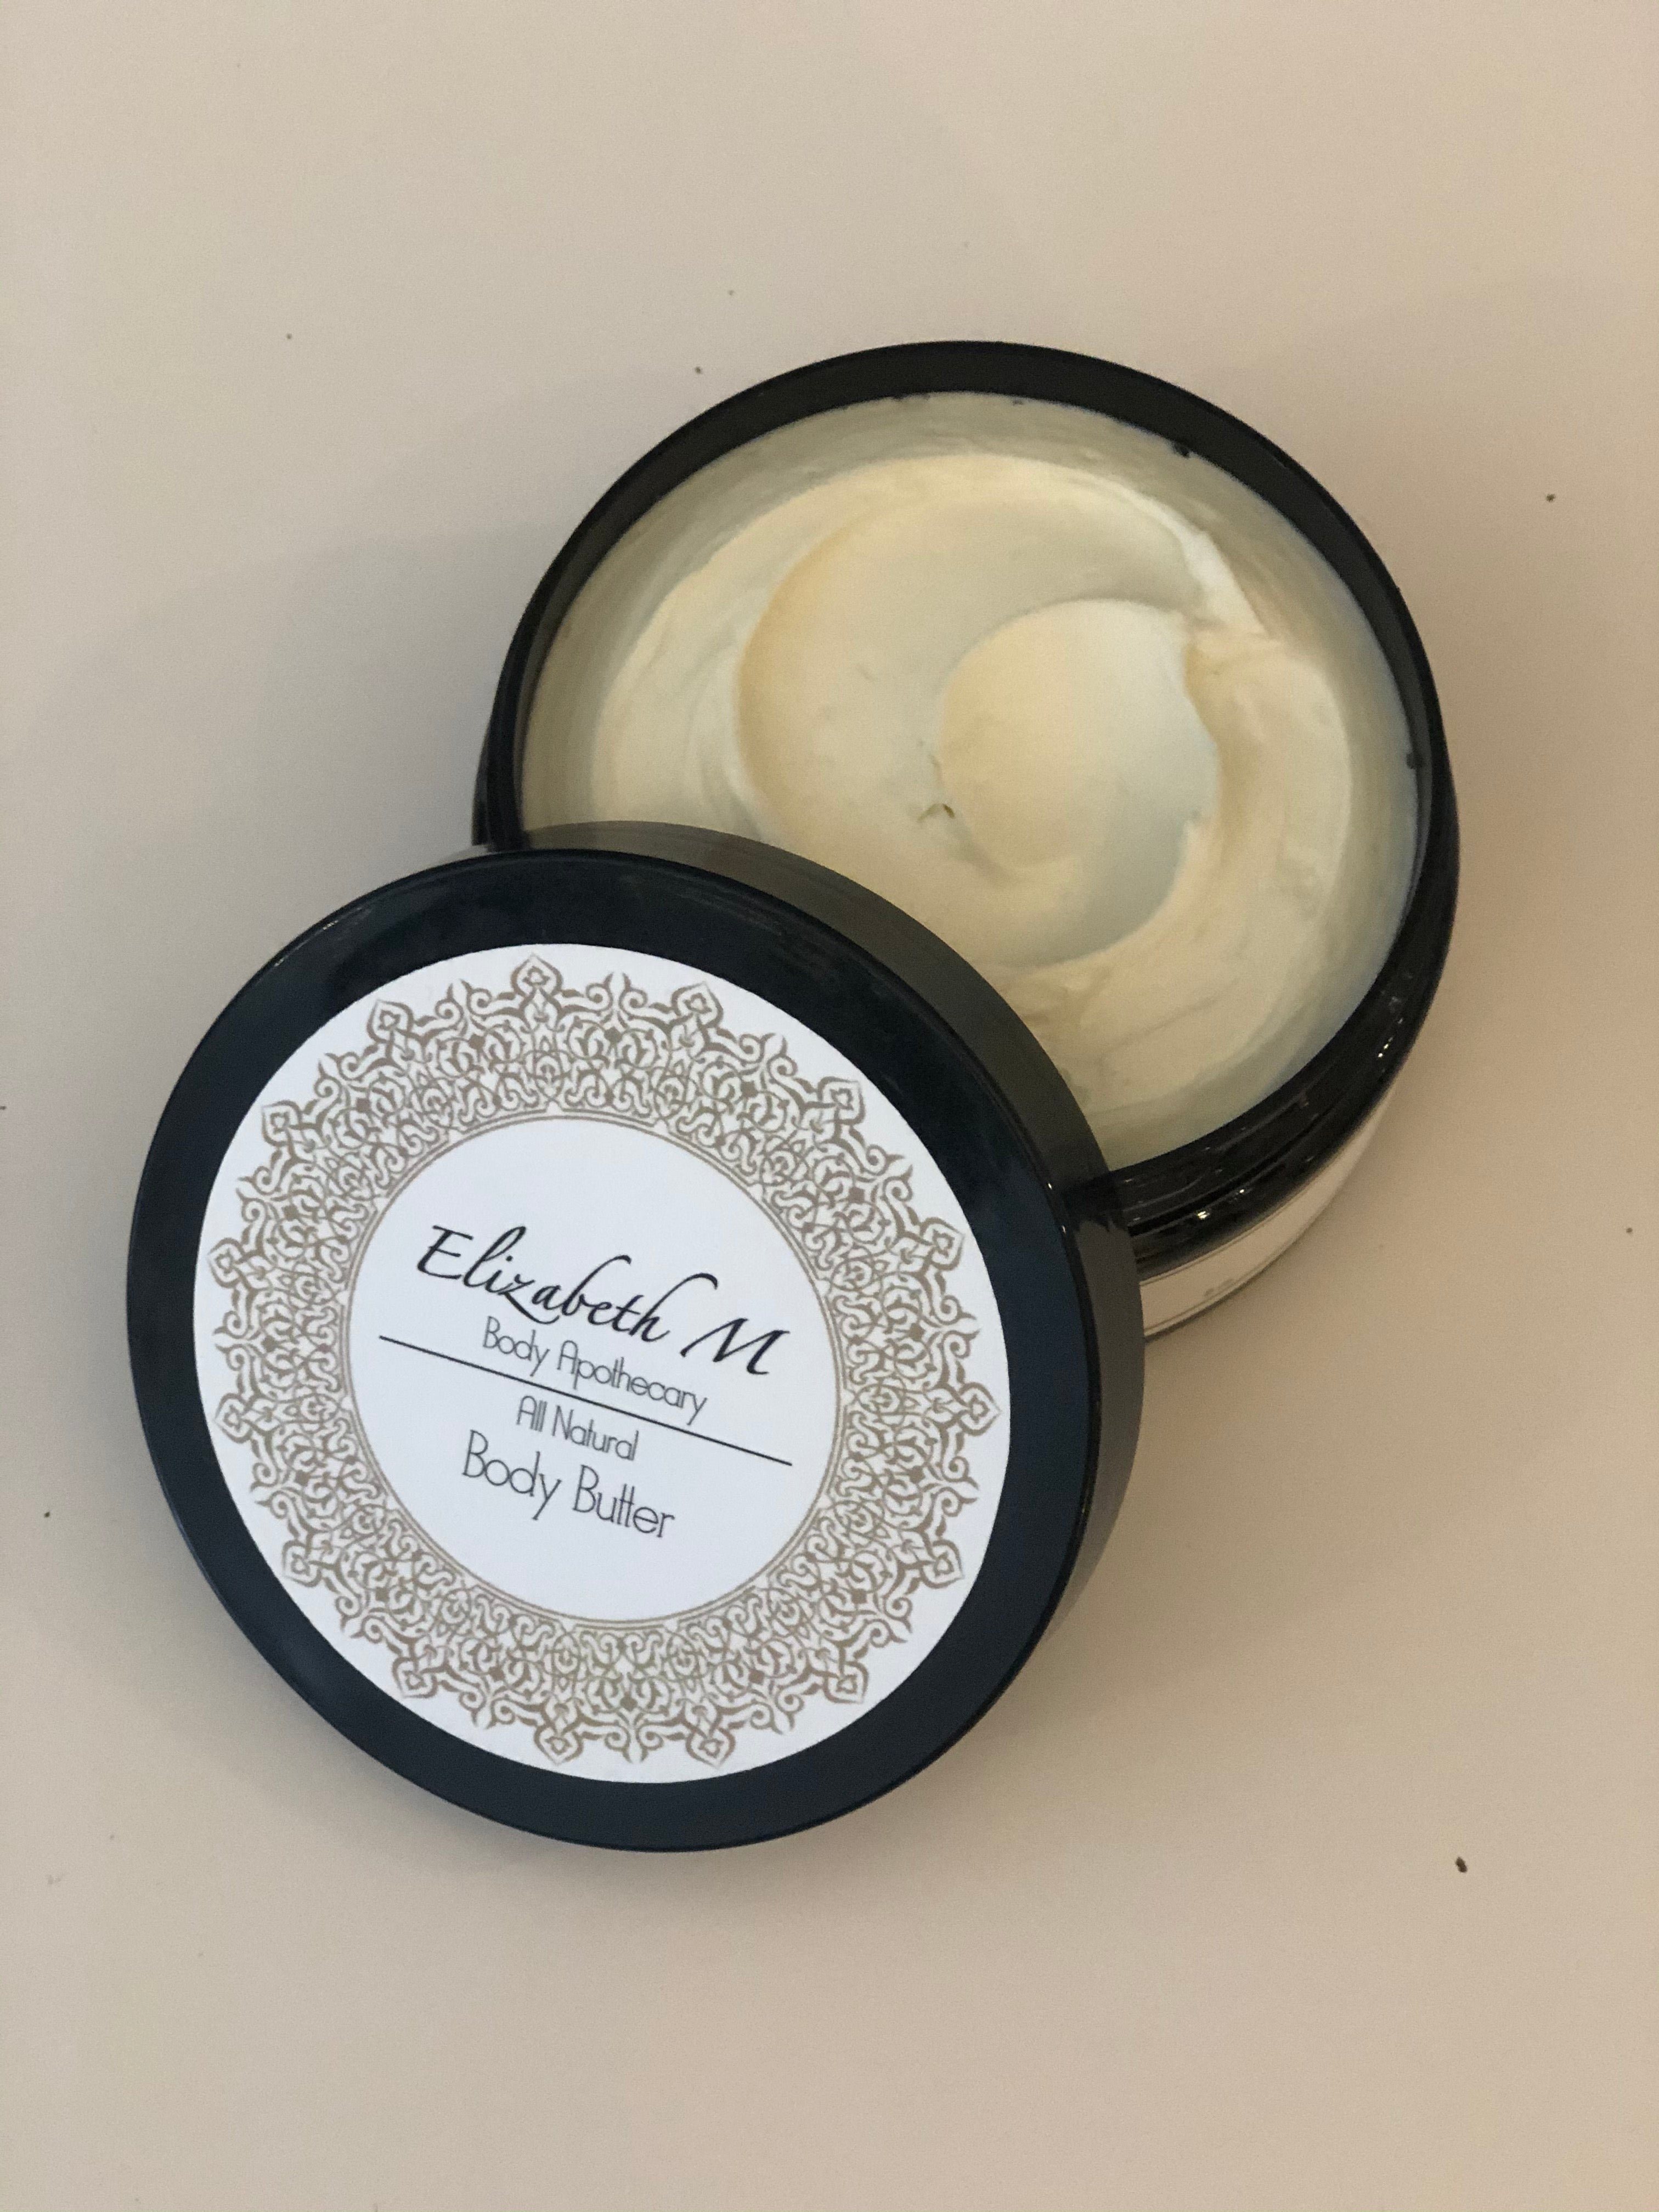 Lavender & Patchouli Body Butter